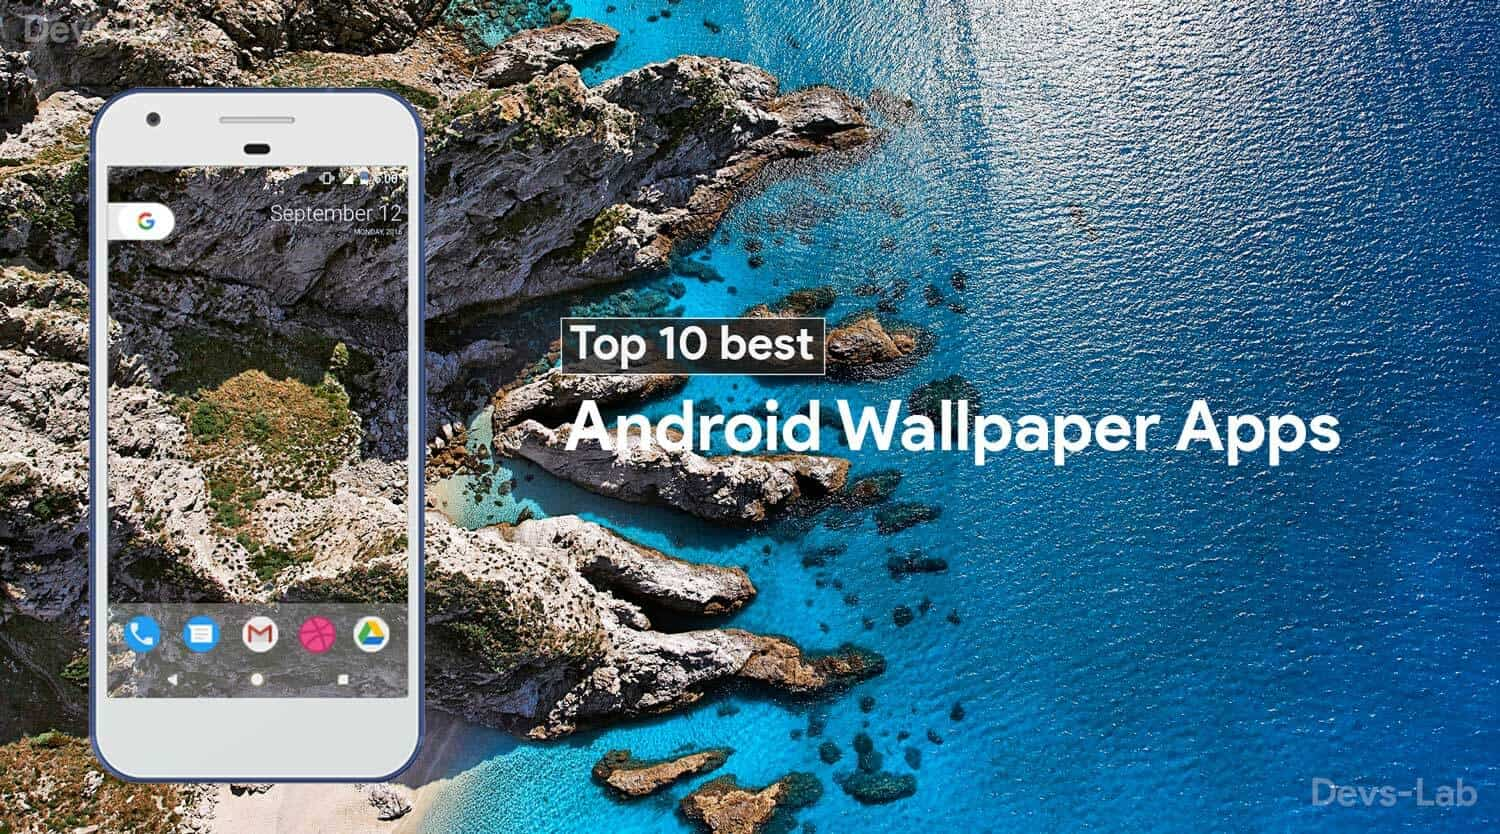 10 Best Hd Android Wallpaper And Qhd Android Wallpaper: Top 10 Best Android Apps For Gorgeous HD And QHD Wallpapers